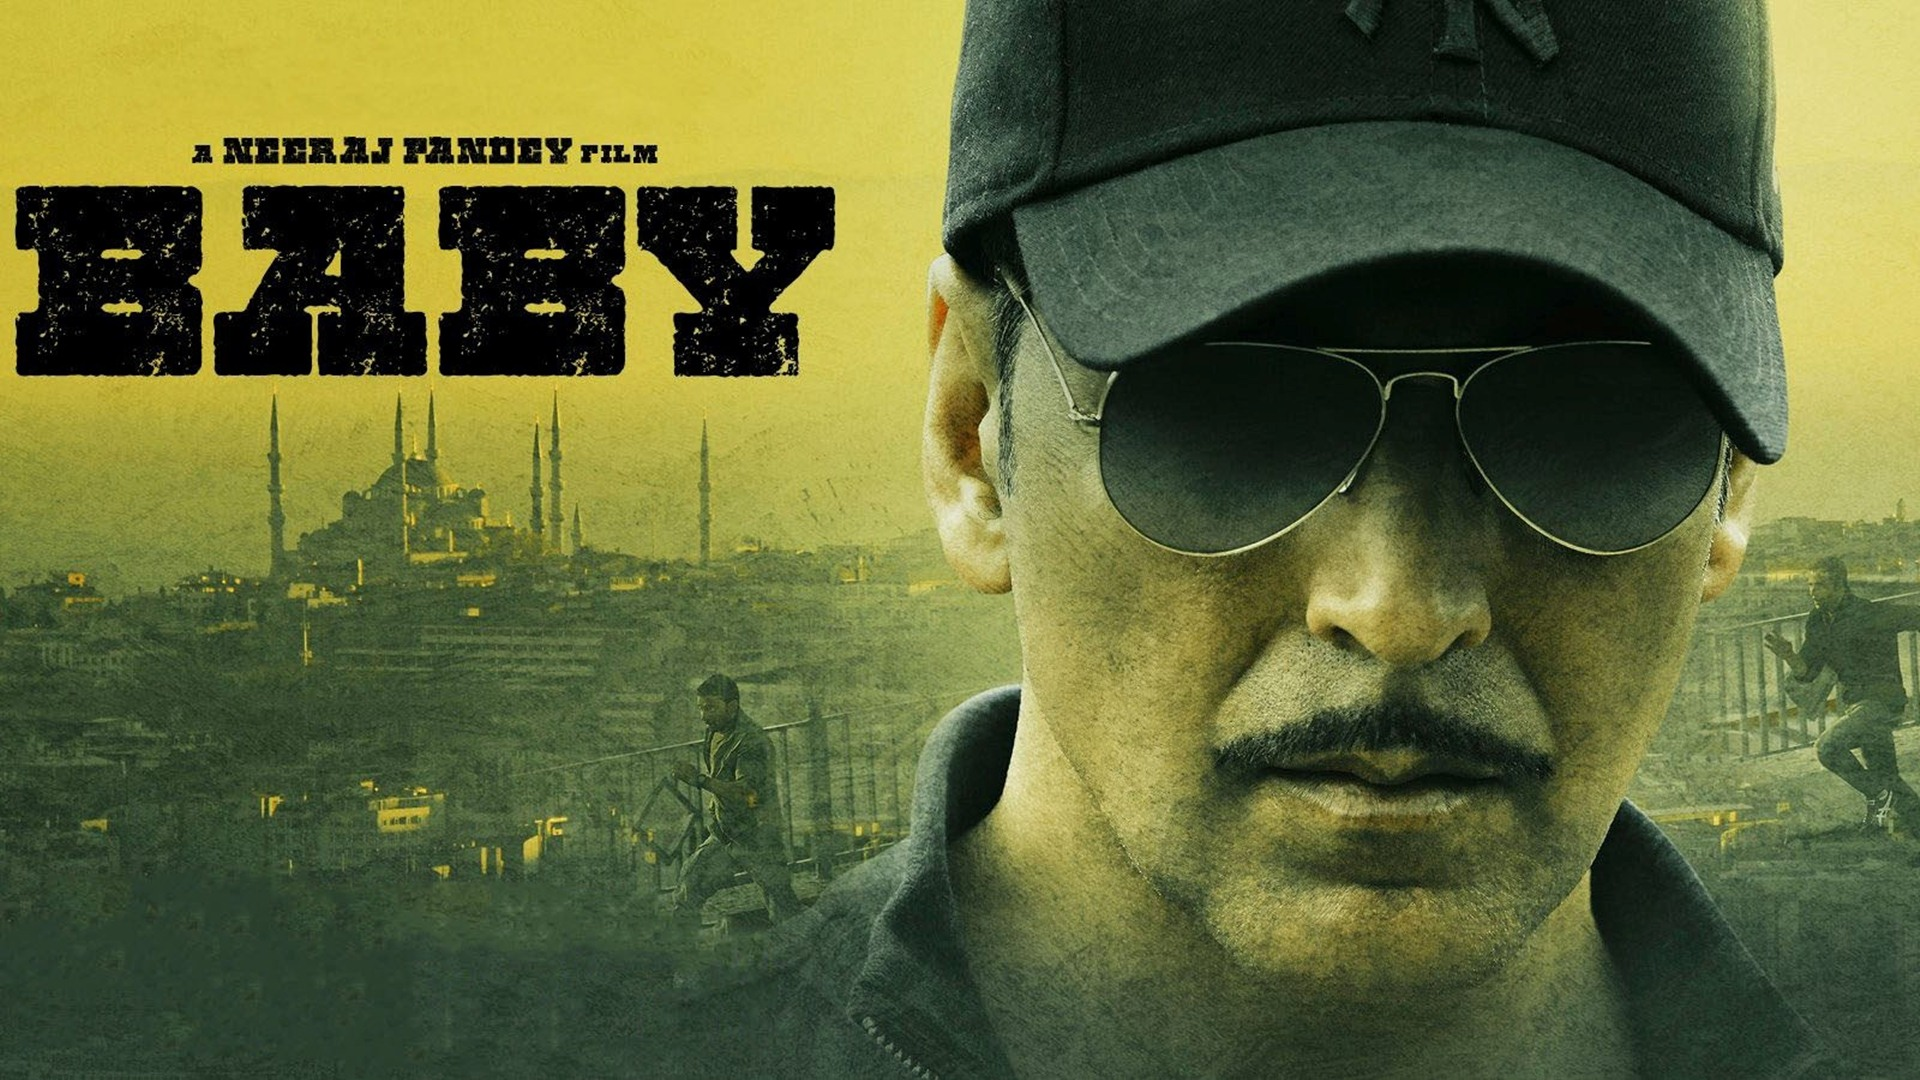 Baby_movie_poster